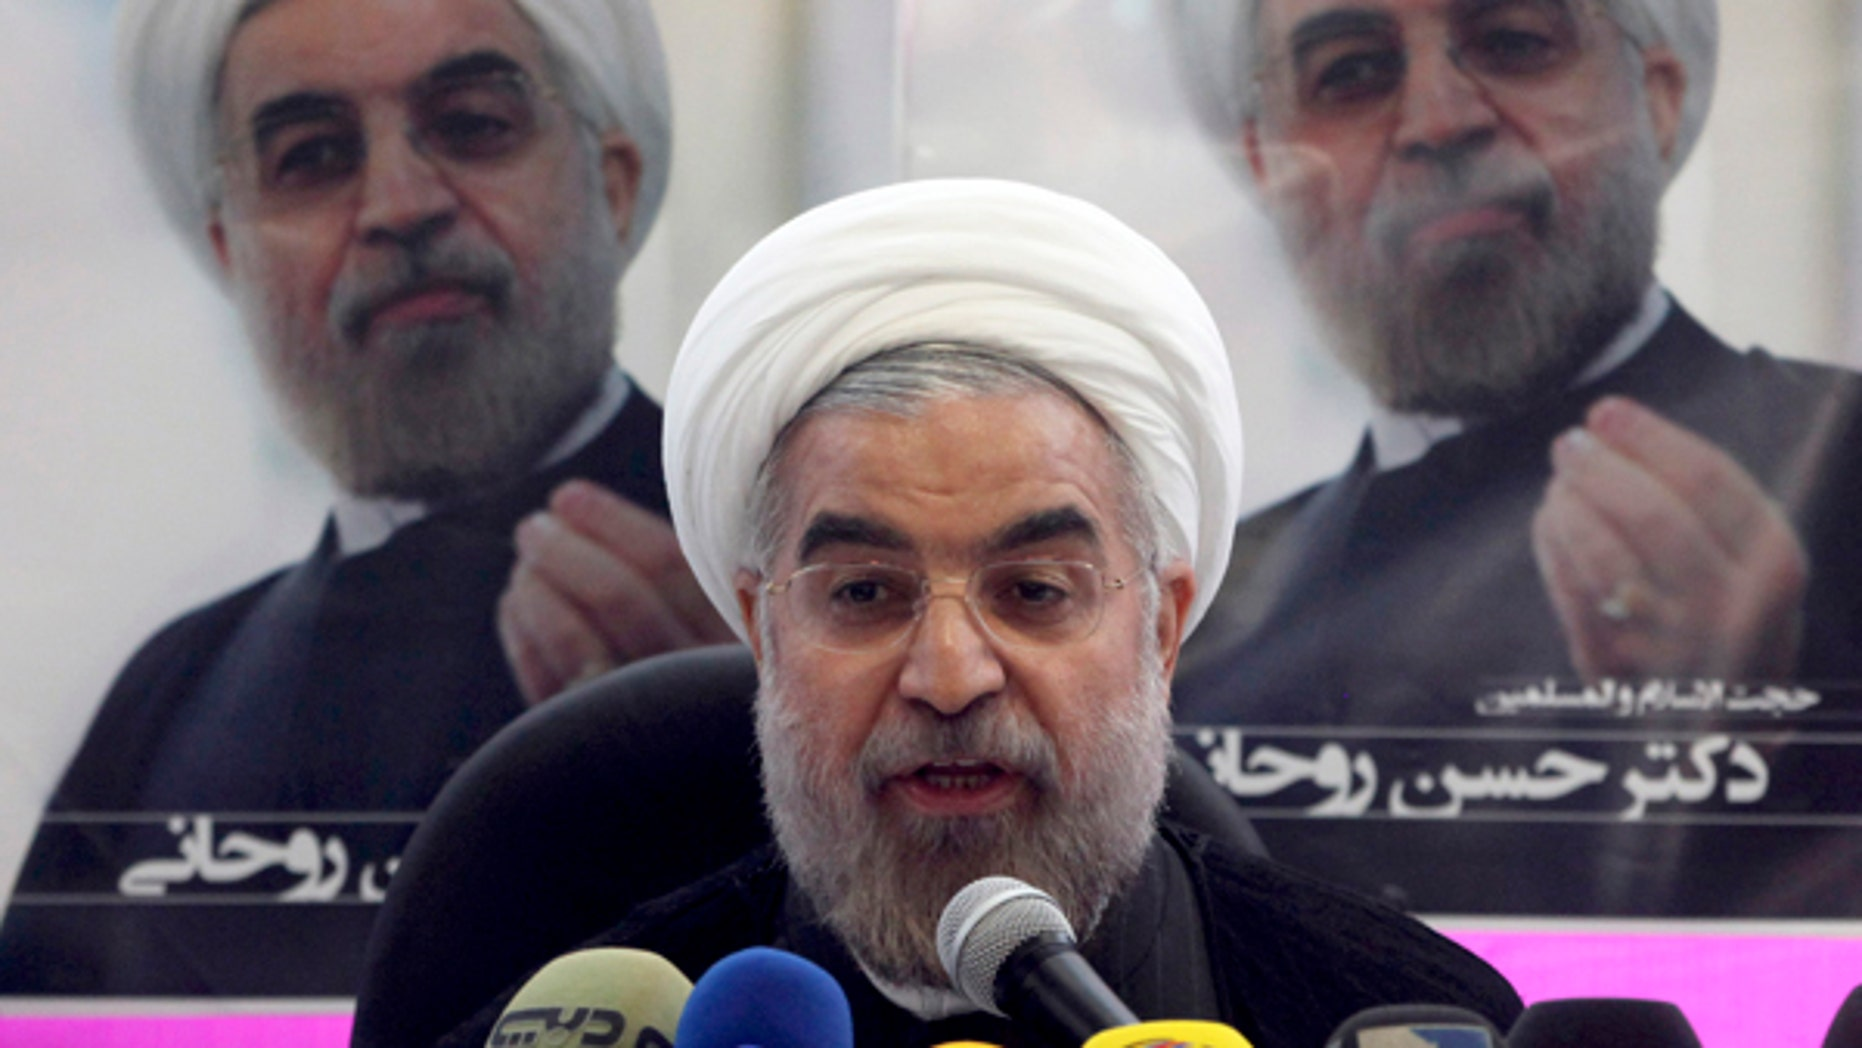 The cabinet assembled by new Iranian President Hasan Rowhani is made up of 18 mostly hard-liners. (AP Photo/Vahid Salemi)